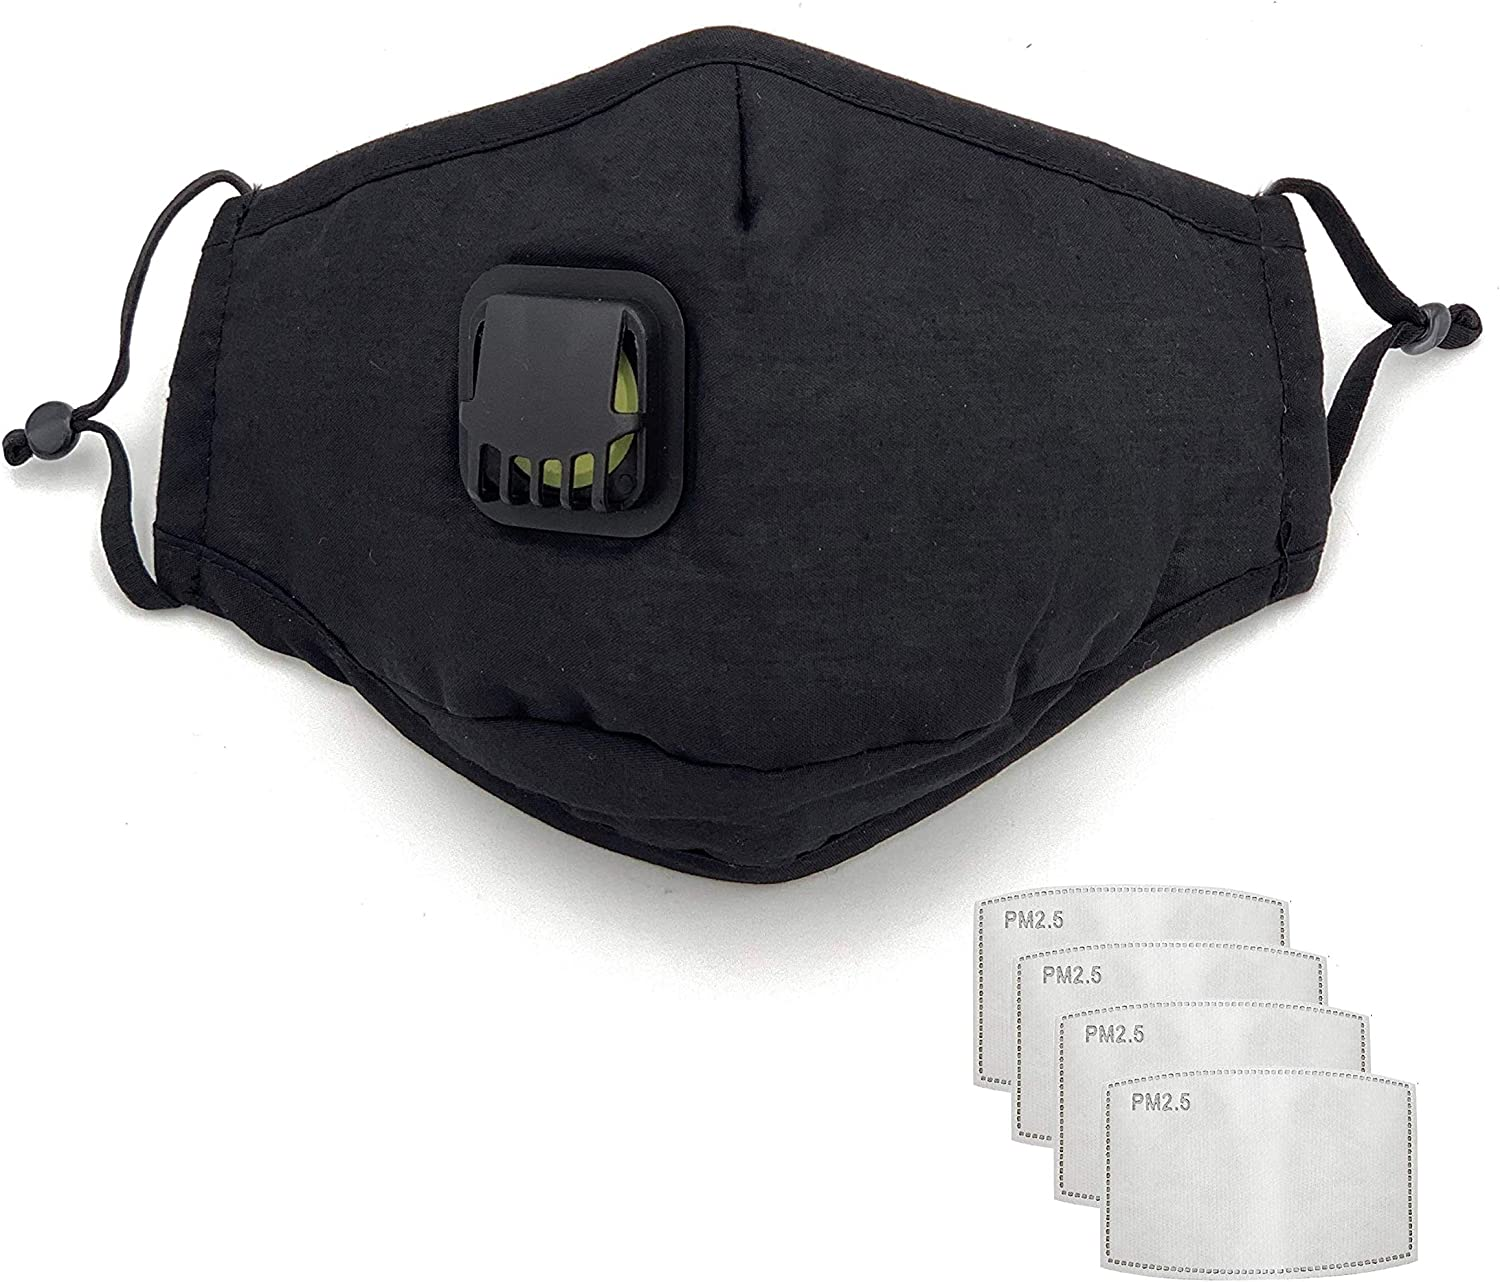 TK FASHION MASK Black Cotton Reusable Washable Face Mask with Breathing Valve & Filter Pocket (Included 4 FREE Filters)